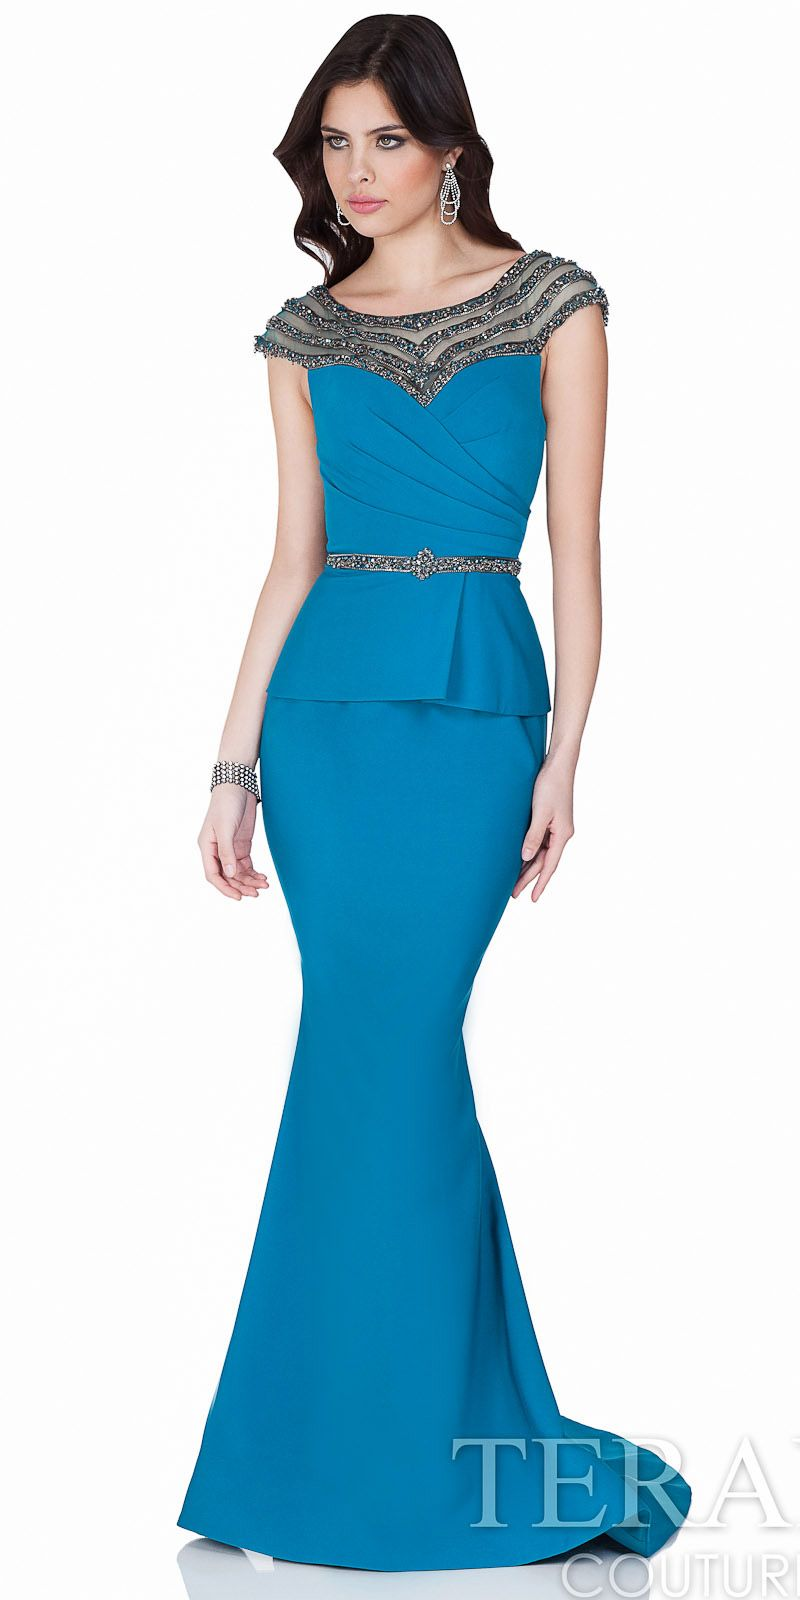 Peplum Pleated Beadwork Evening Gown by Terani Couture #edressme ...